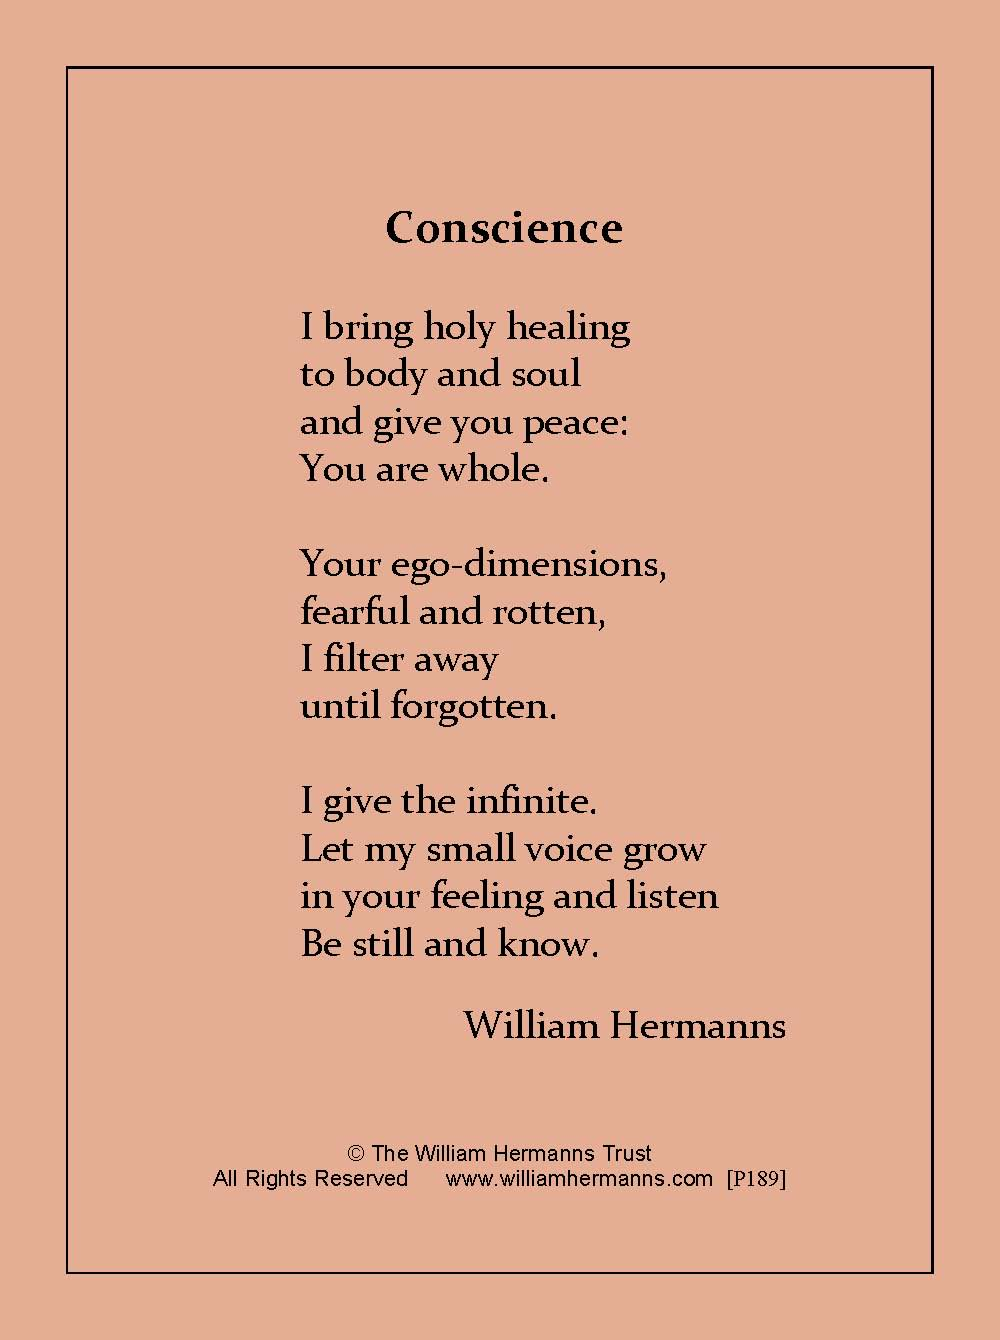 Conscience by Willilam Hermanns